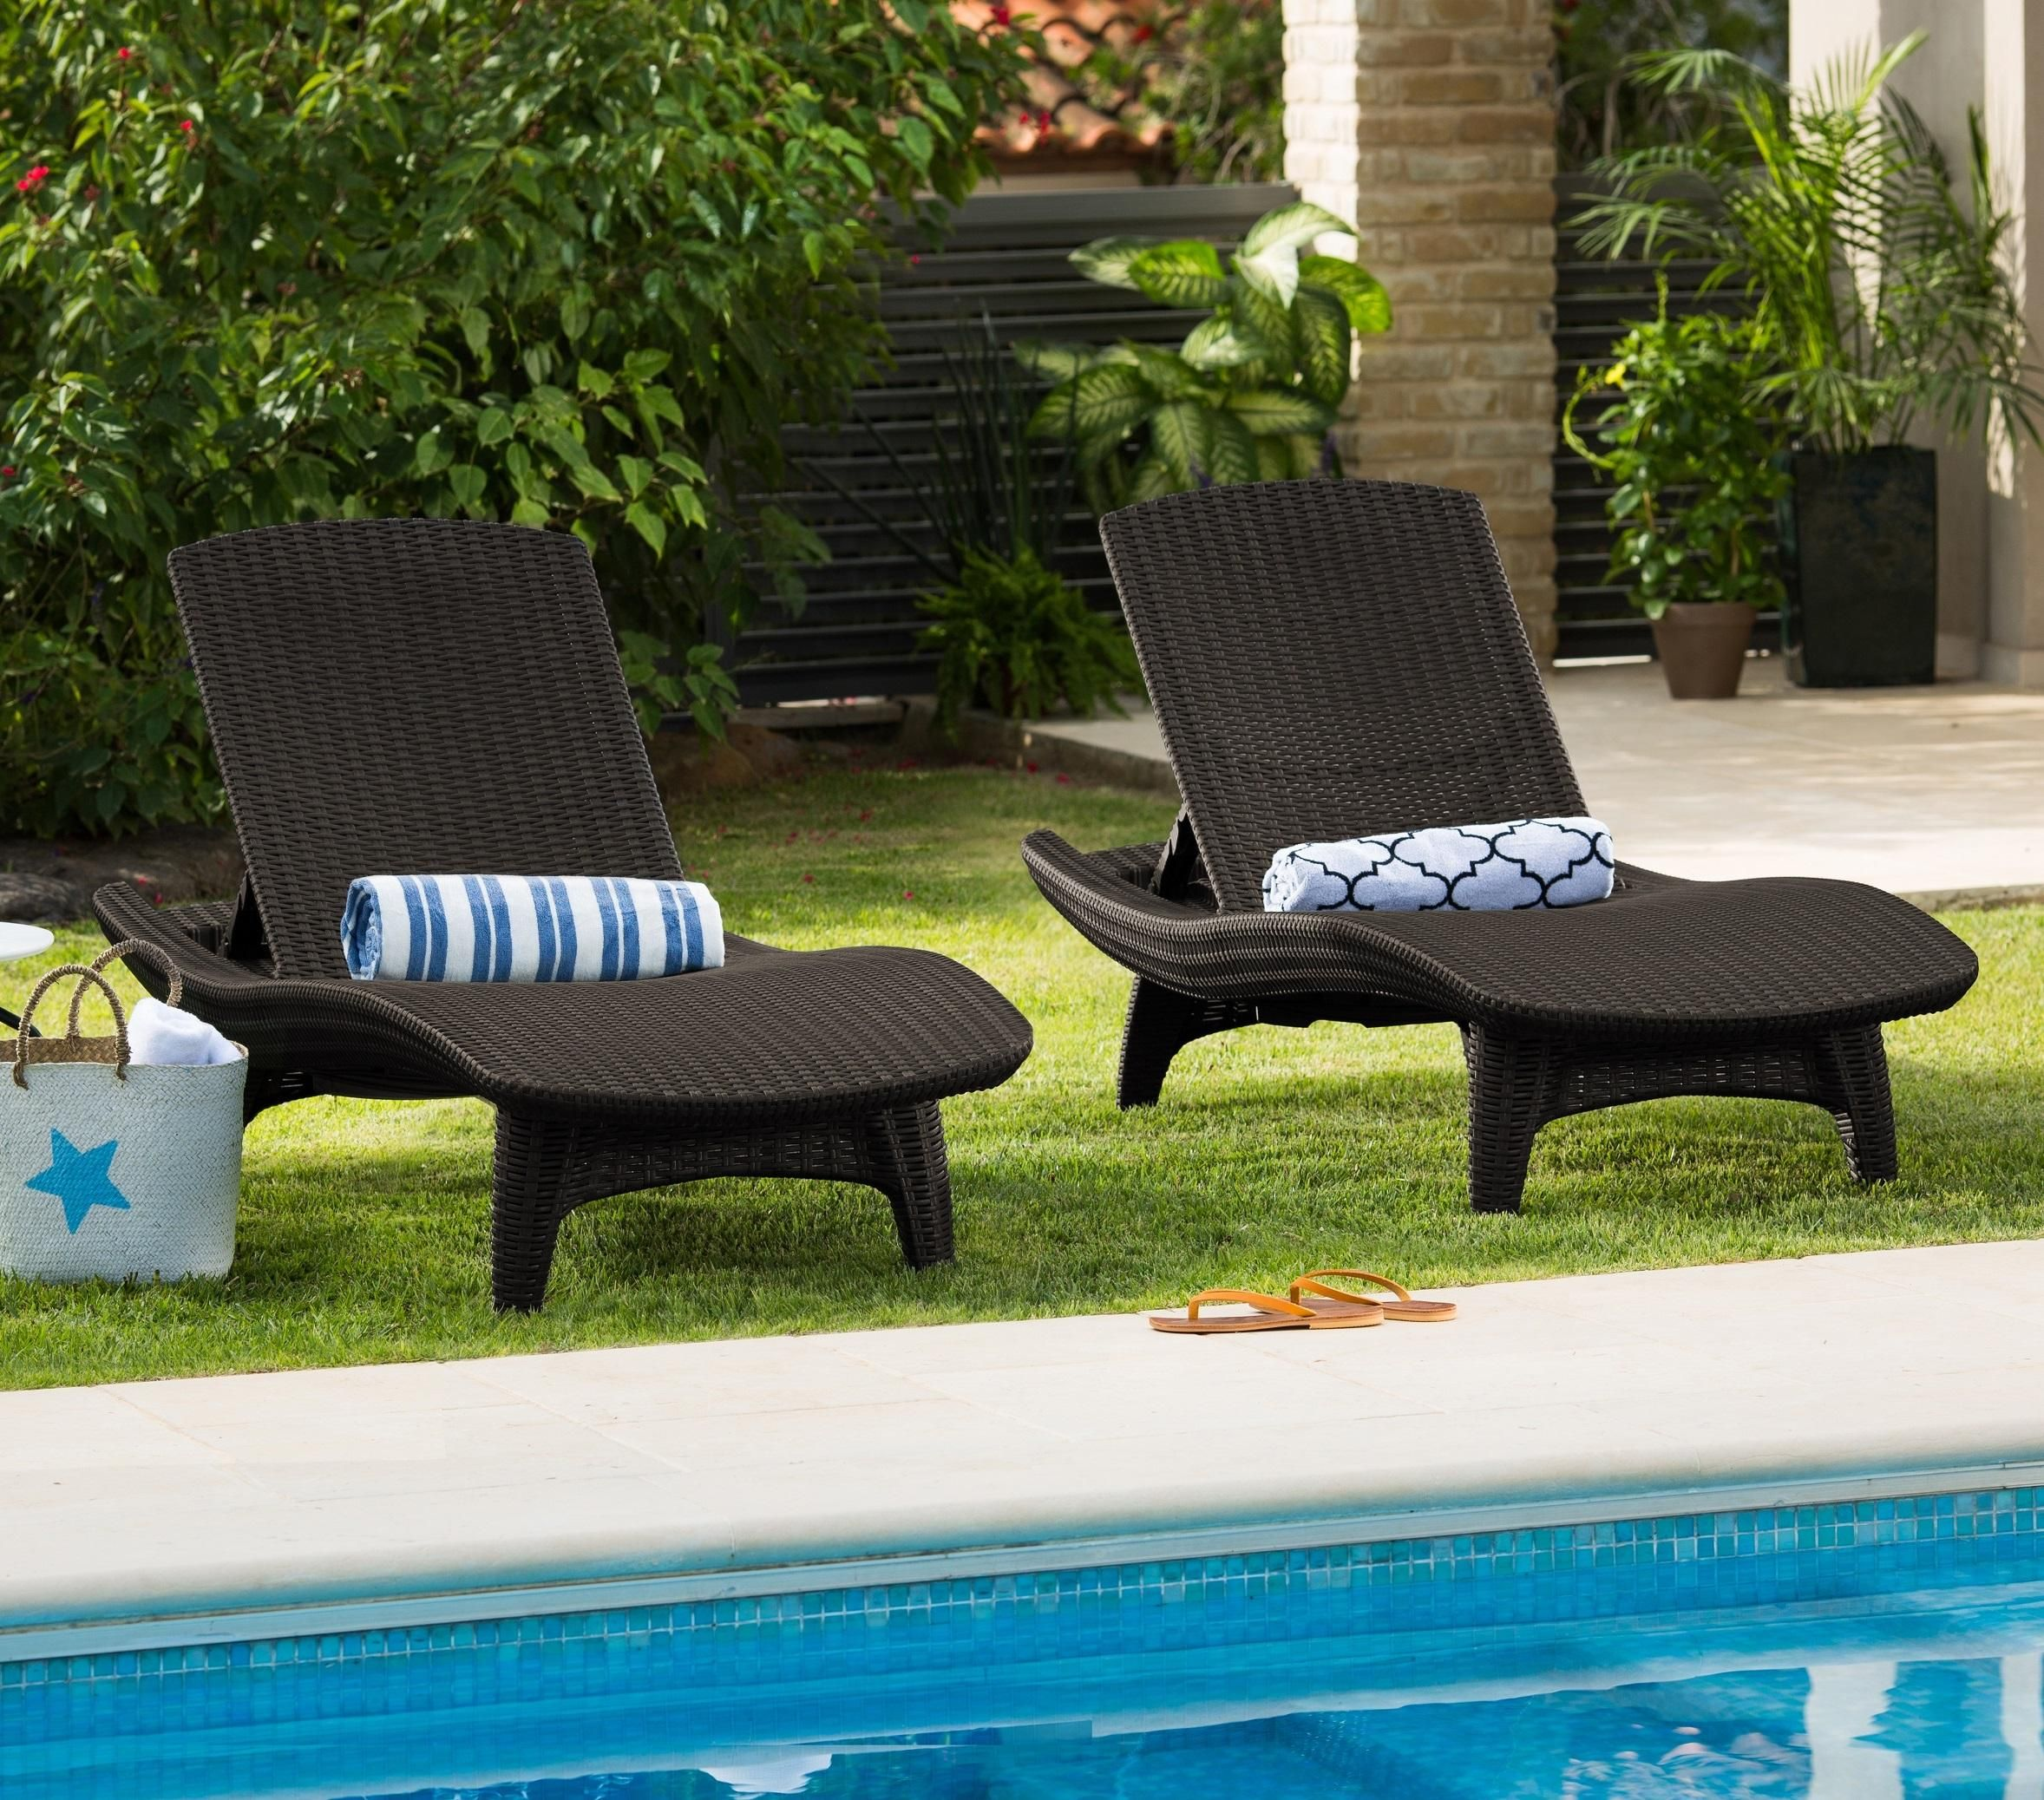 Keter resin plastic outdoor chaise lounge chairs set of 2